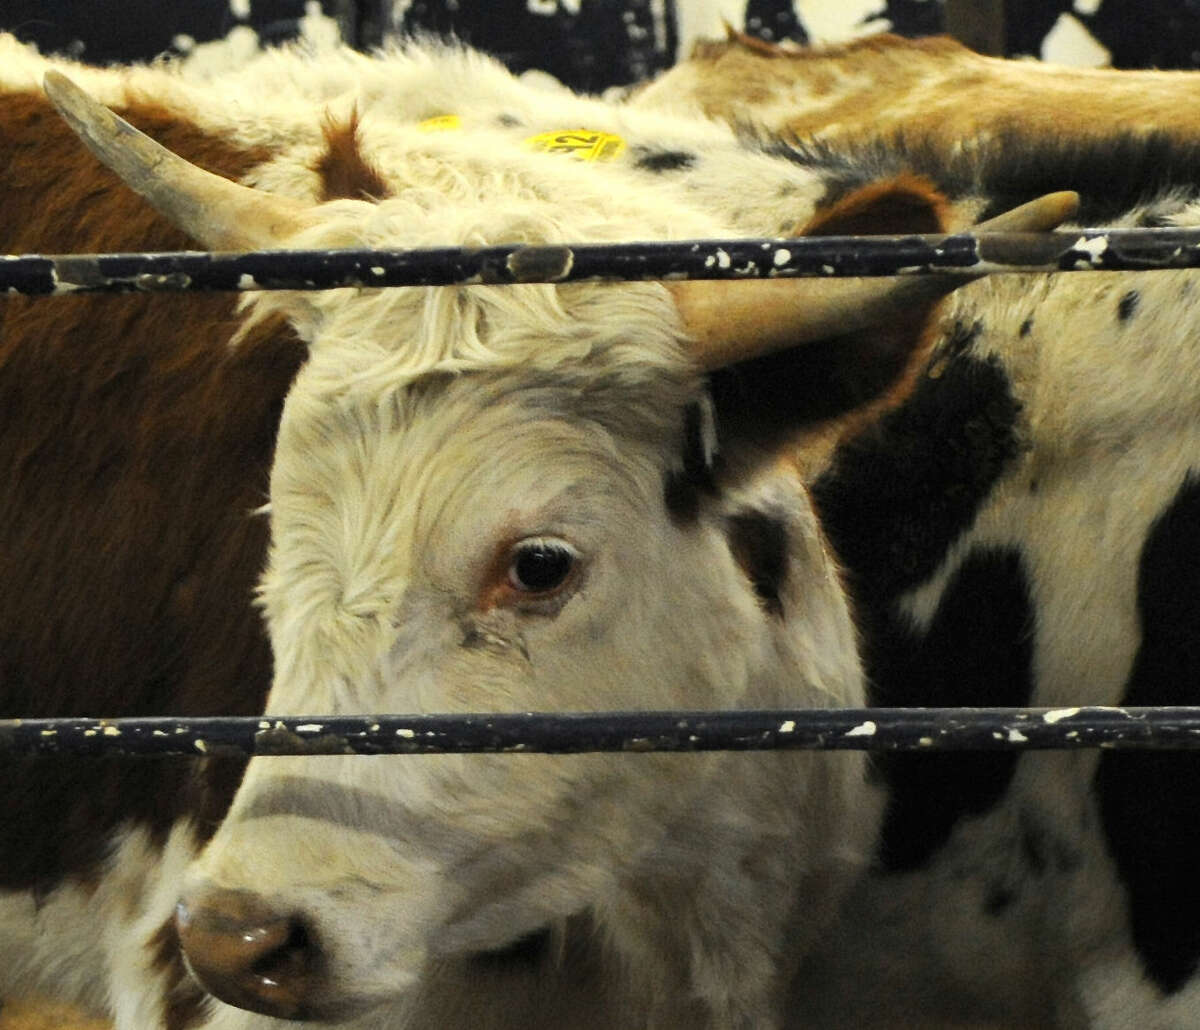 With the abundant rain, some Texas ranchers are considering restocking their herds.